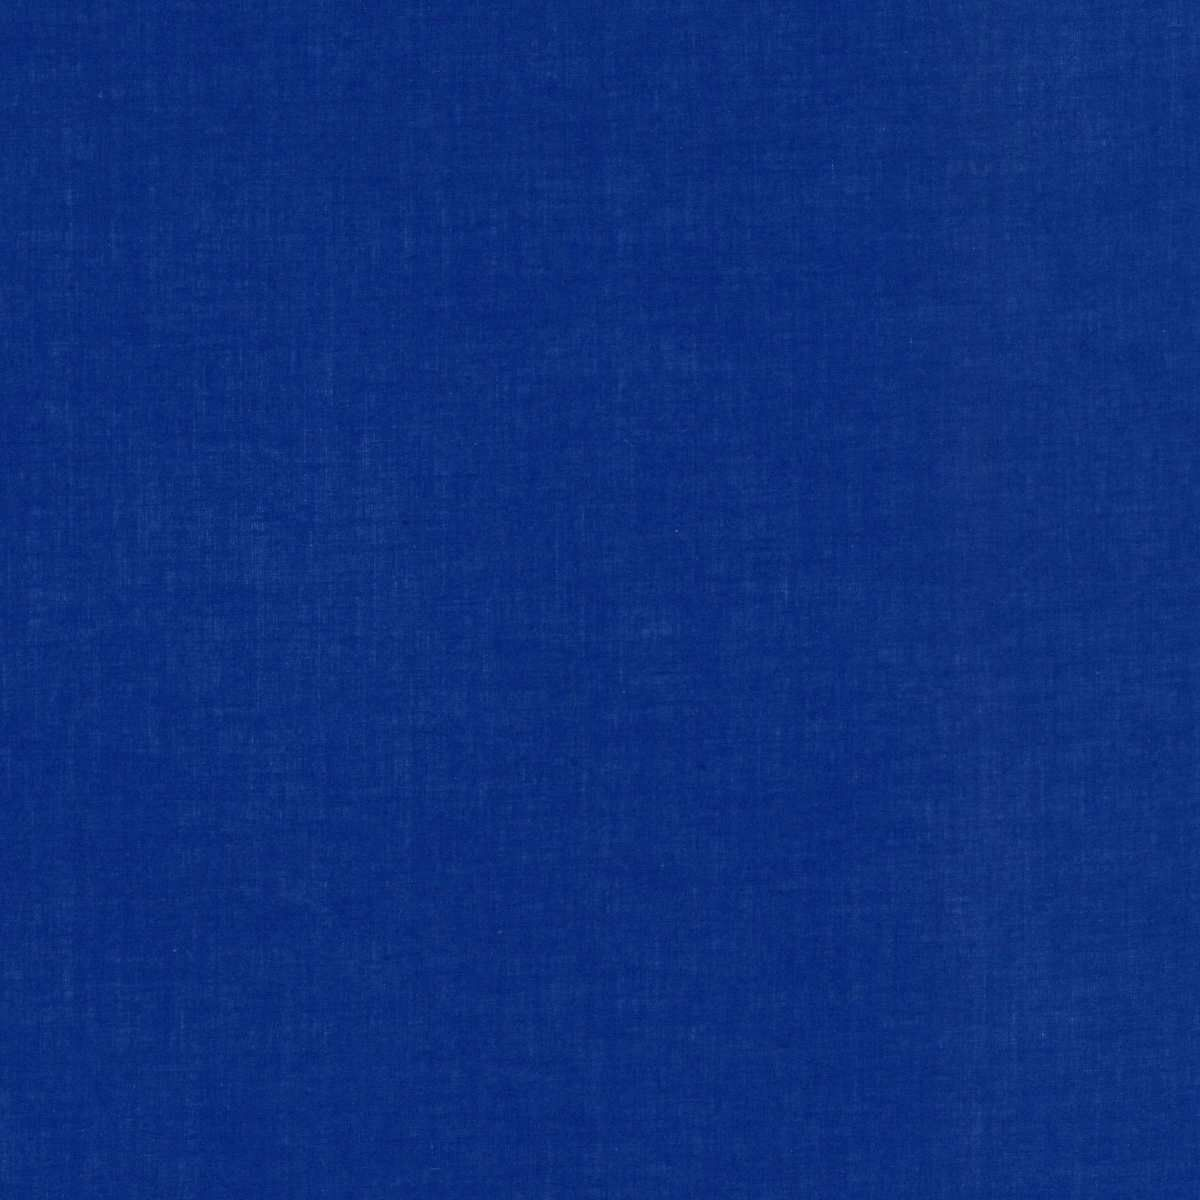 Solid Colour Plain Cotton Lawn Fabric - Royal